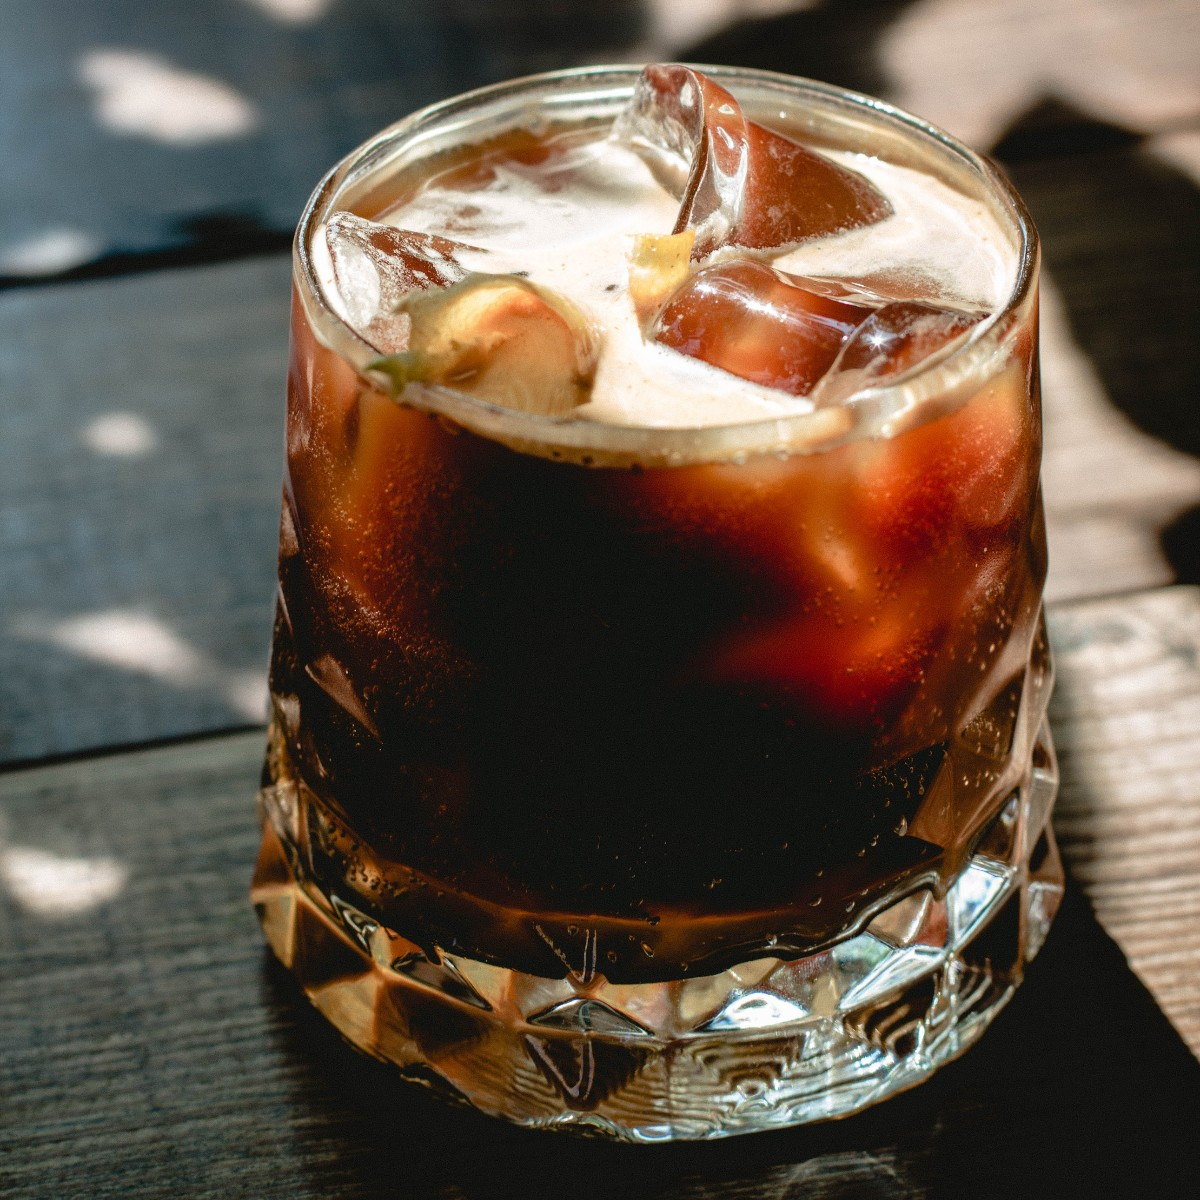 Since ice cubes can be used in drinks, Arizona considers them food and doesn't tax them. Ice blocks on the other hand are taxed and will cost you extra! #StrangeLaws #WeirdLaws #FunnyLaws